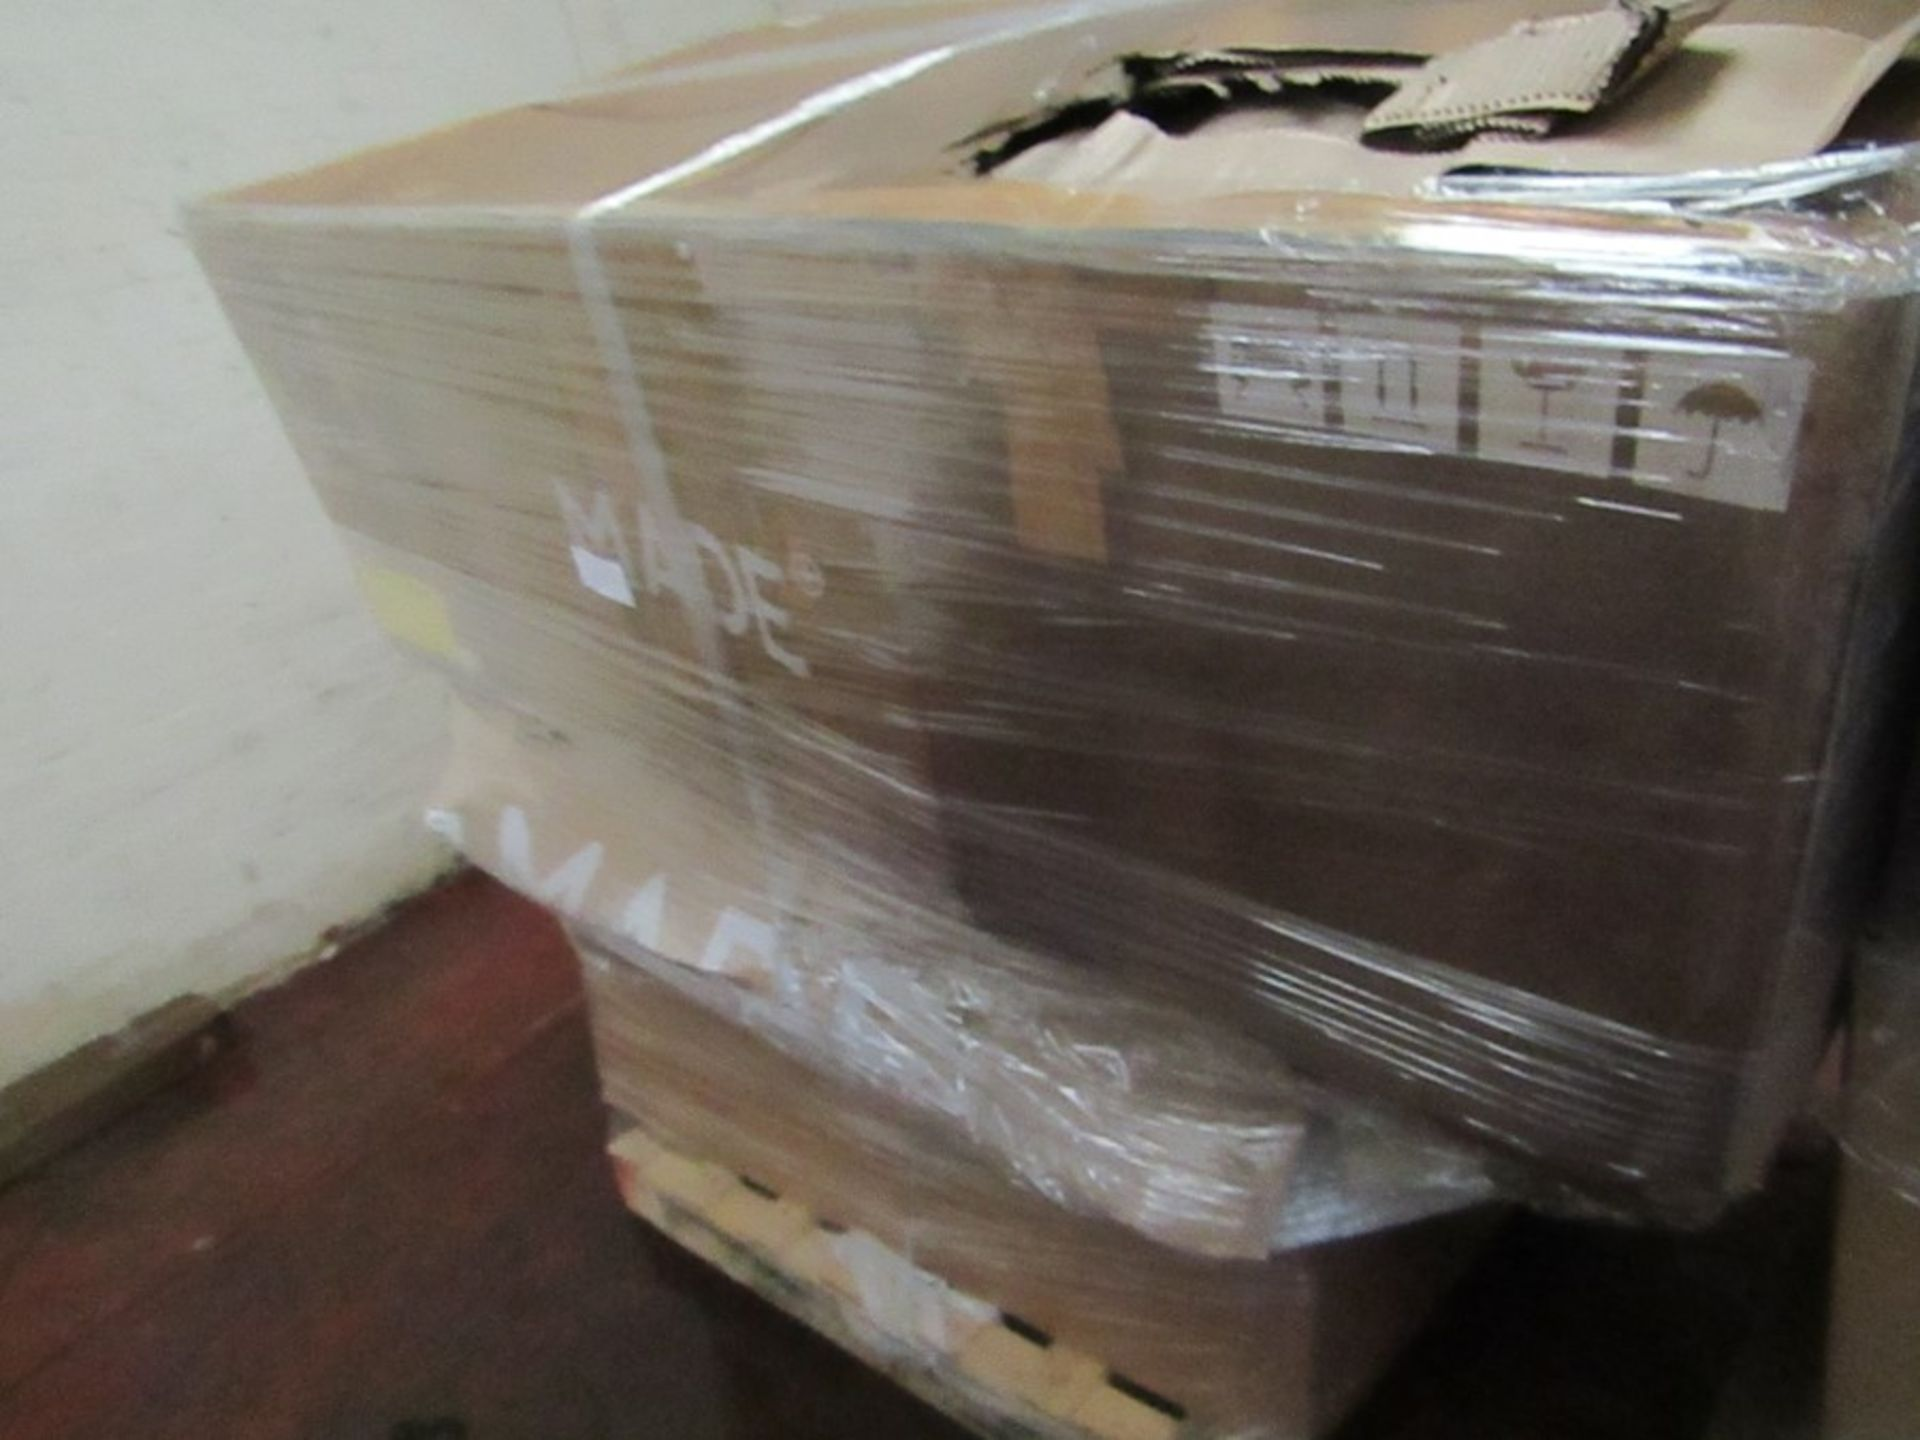   16x   PALLETS OF MADE.COM UNMANIFESTED SOFA PARTS, THESE ARE FROM VARIOUS SOFAS AND DONT APPEAR TO - Image 11 of 34